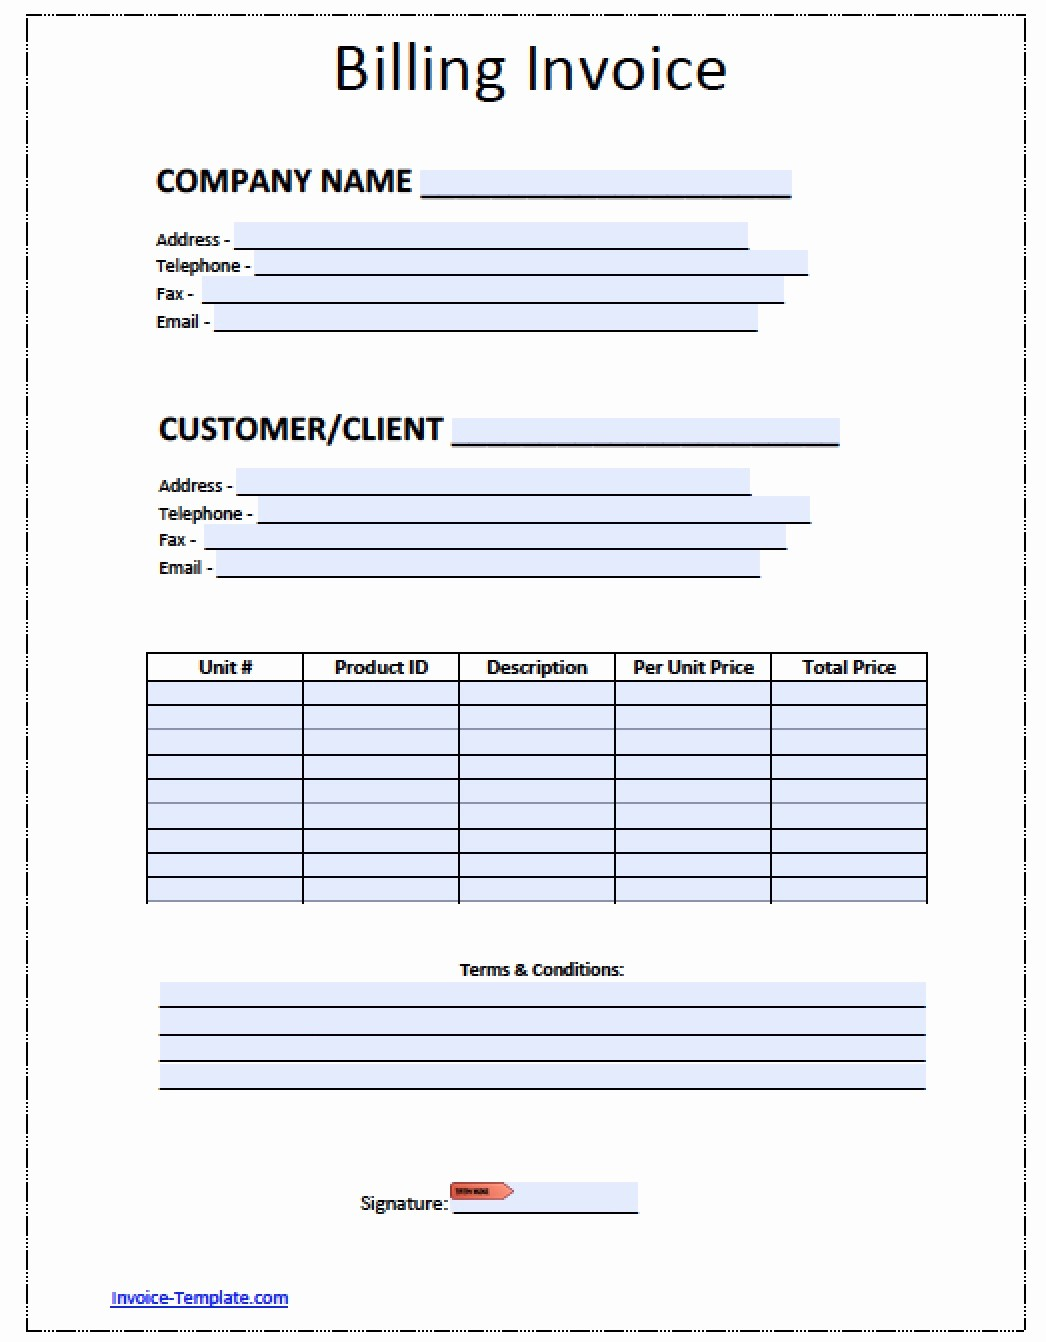 Free Invoice Template for Word Best Of Billing Invoice Template Download Free Blank Invoice